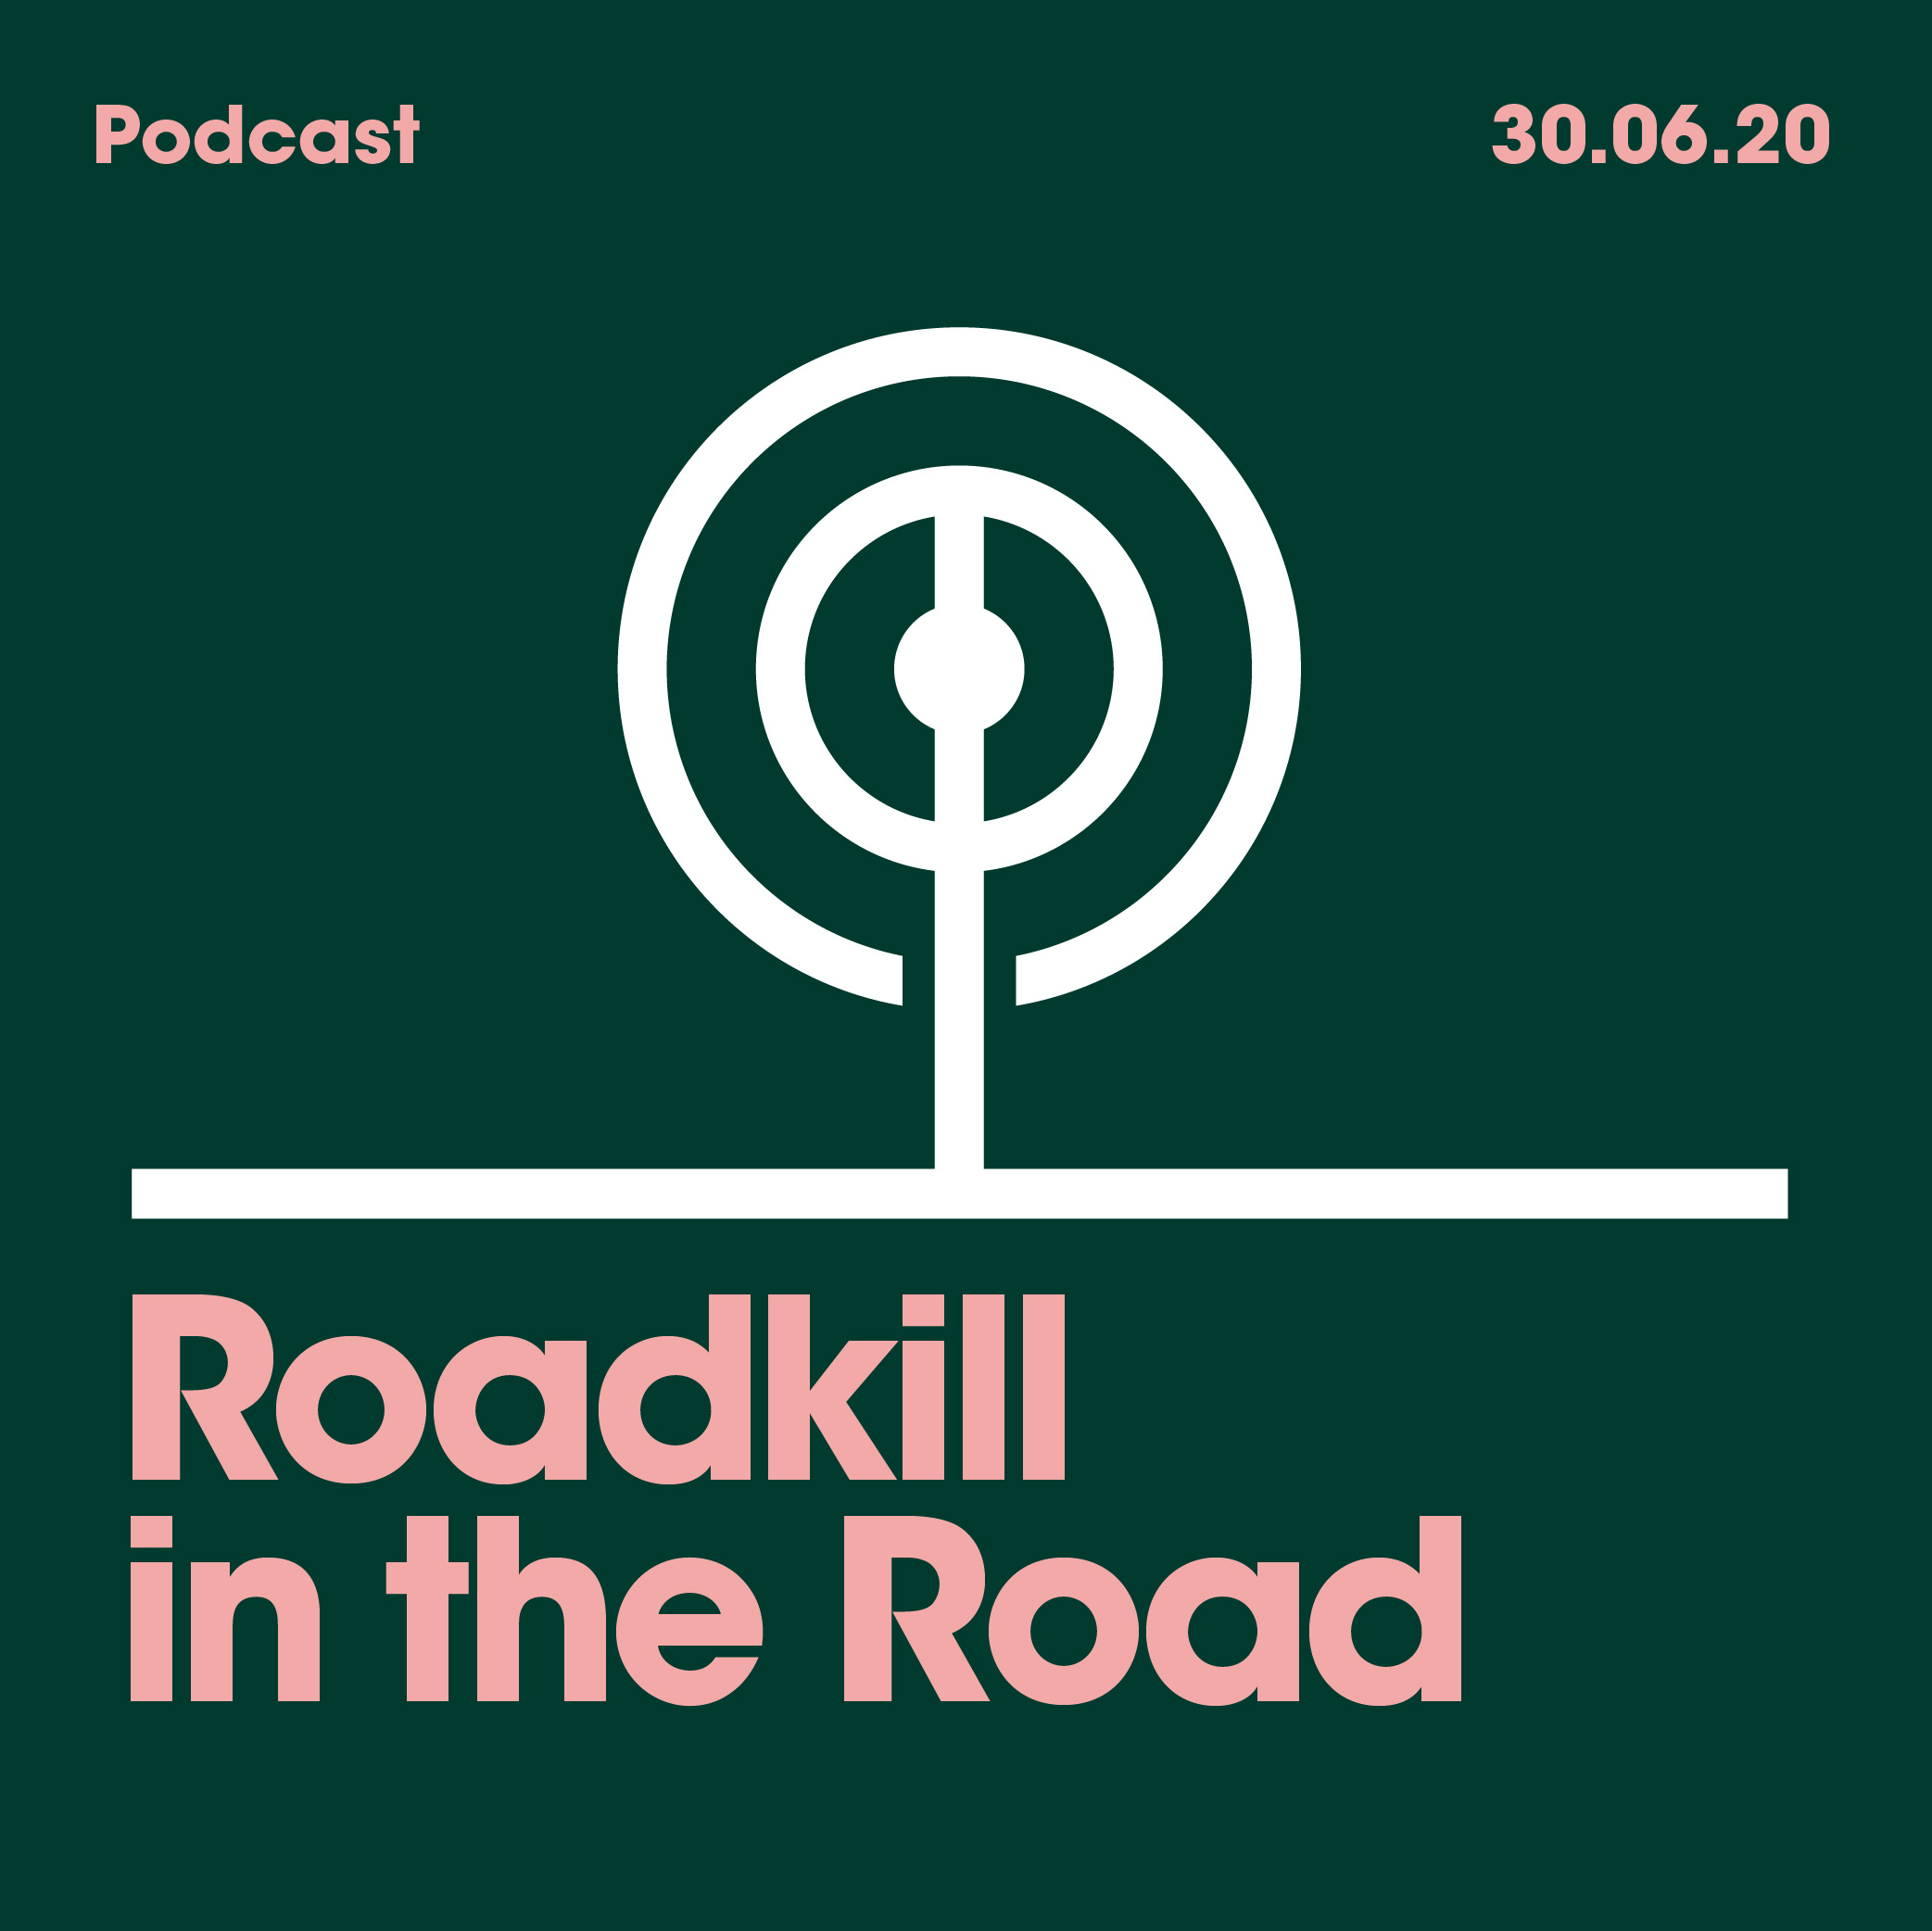 30.06.20. Roadkill in the road